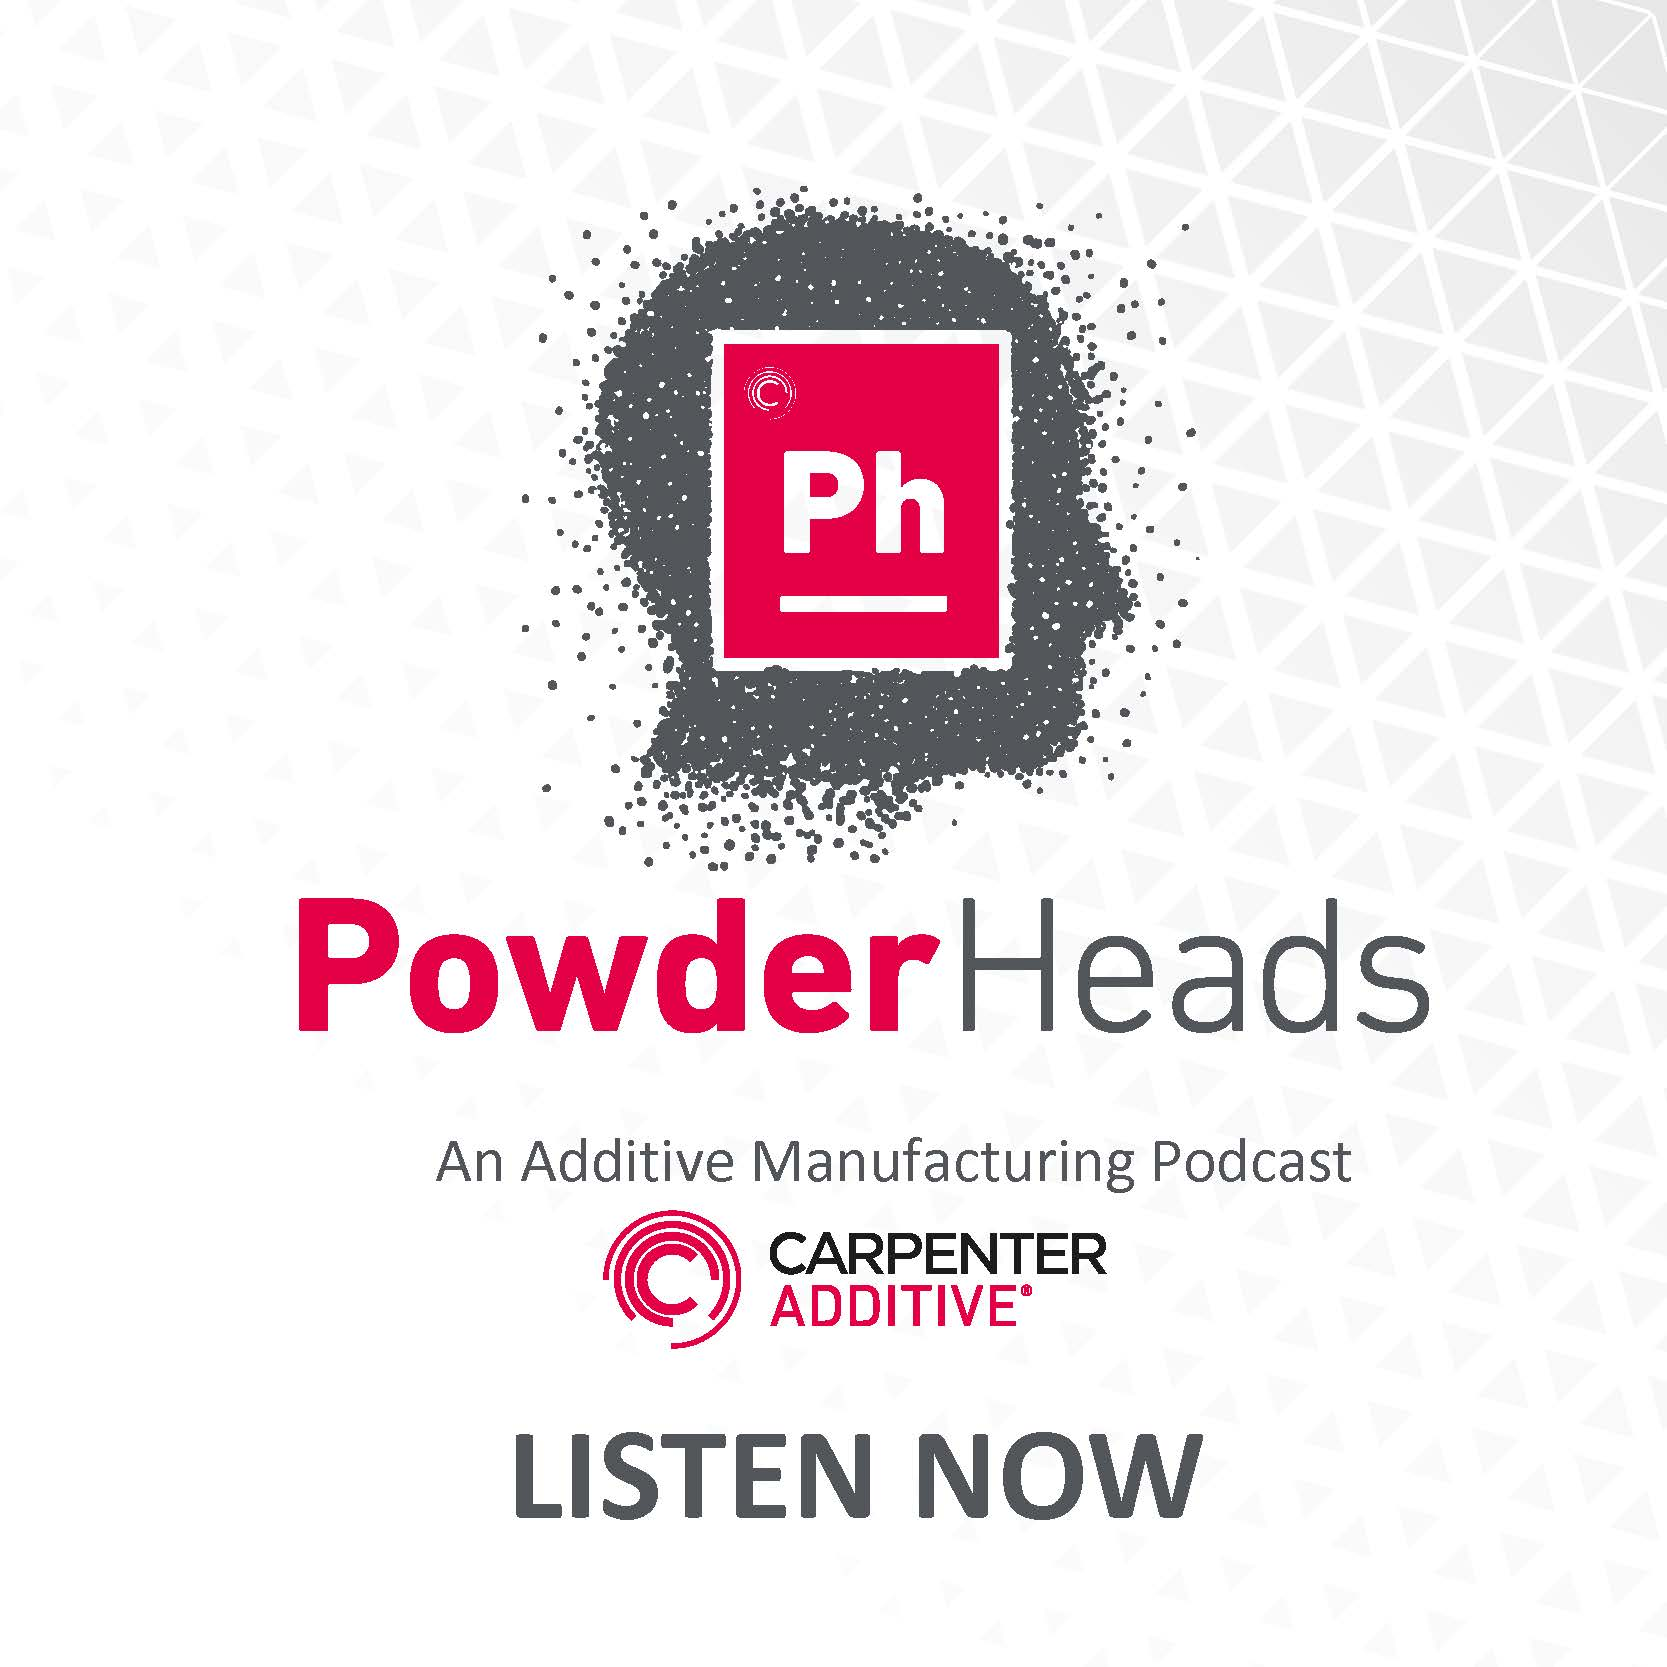 carpenter-additive-powerheads-square-ad_Page_2